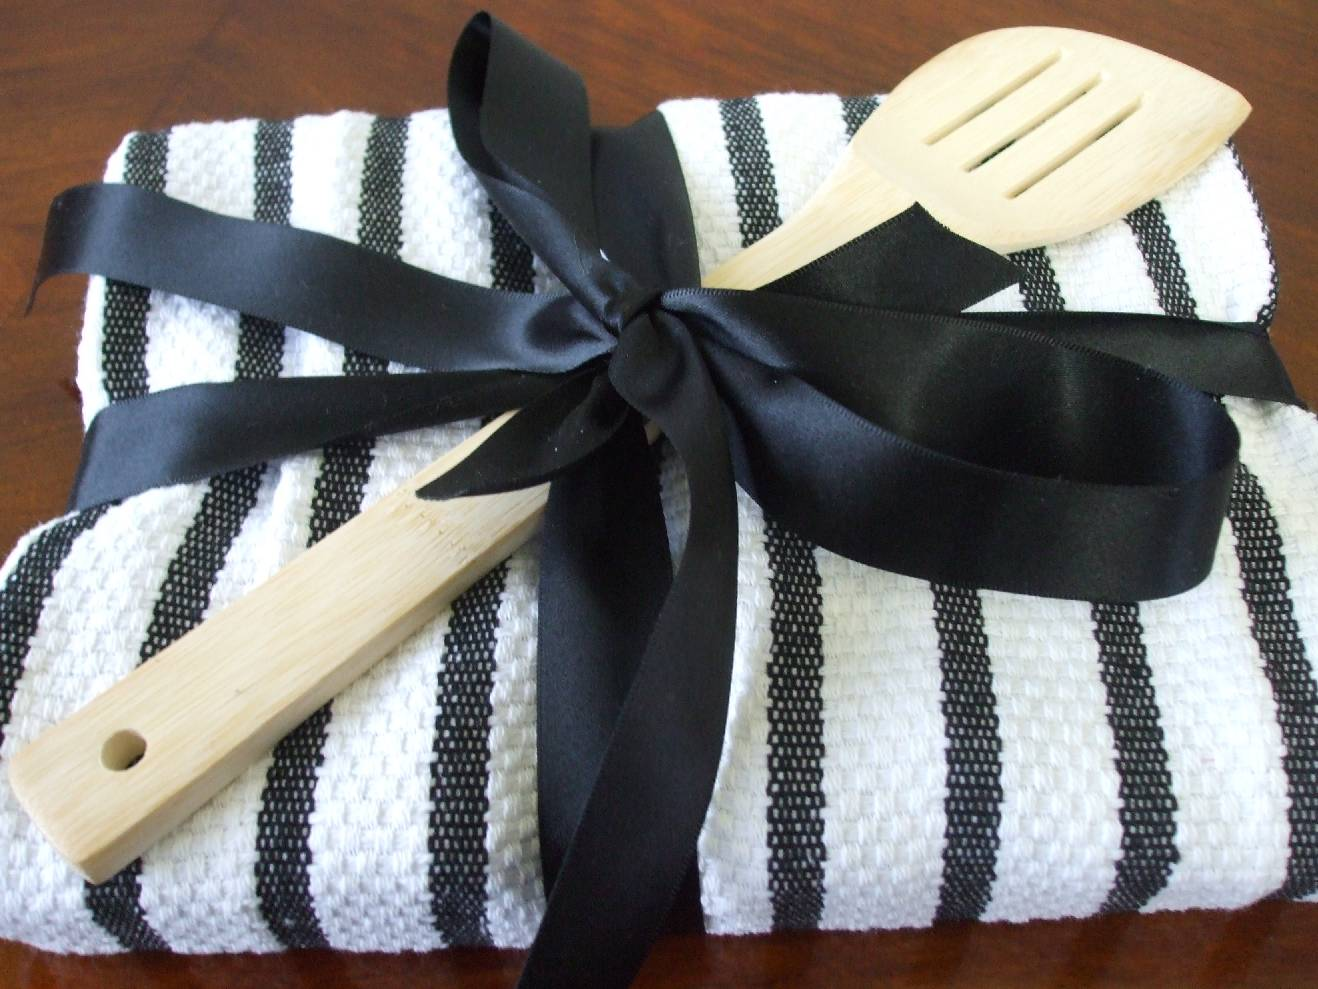 How To Wrap A Wedding Gift: 365 DAYS OF PINTEREST CREATIONS: Day Forty Seven: Gift